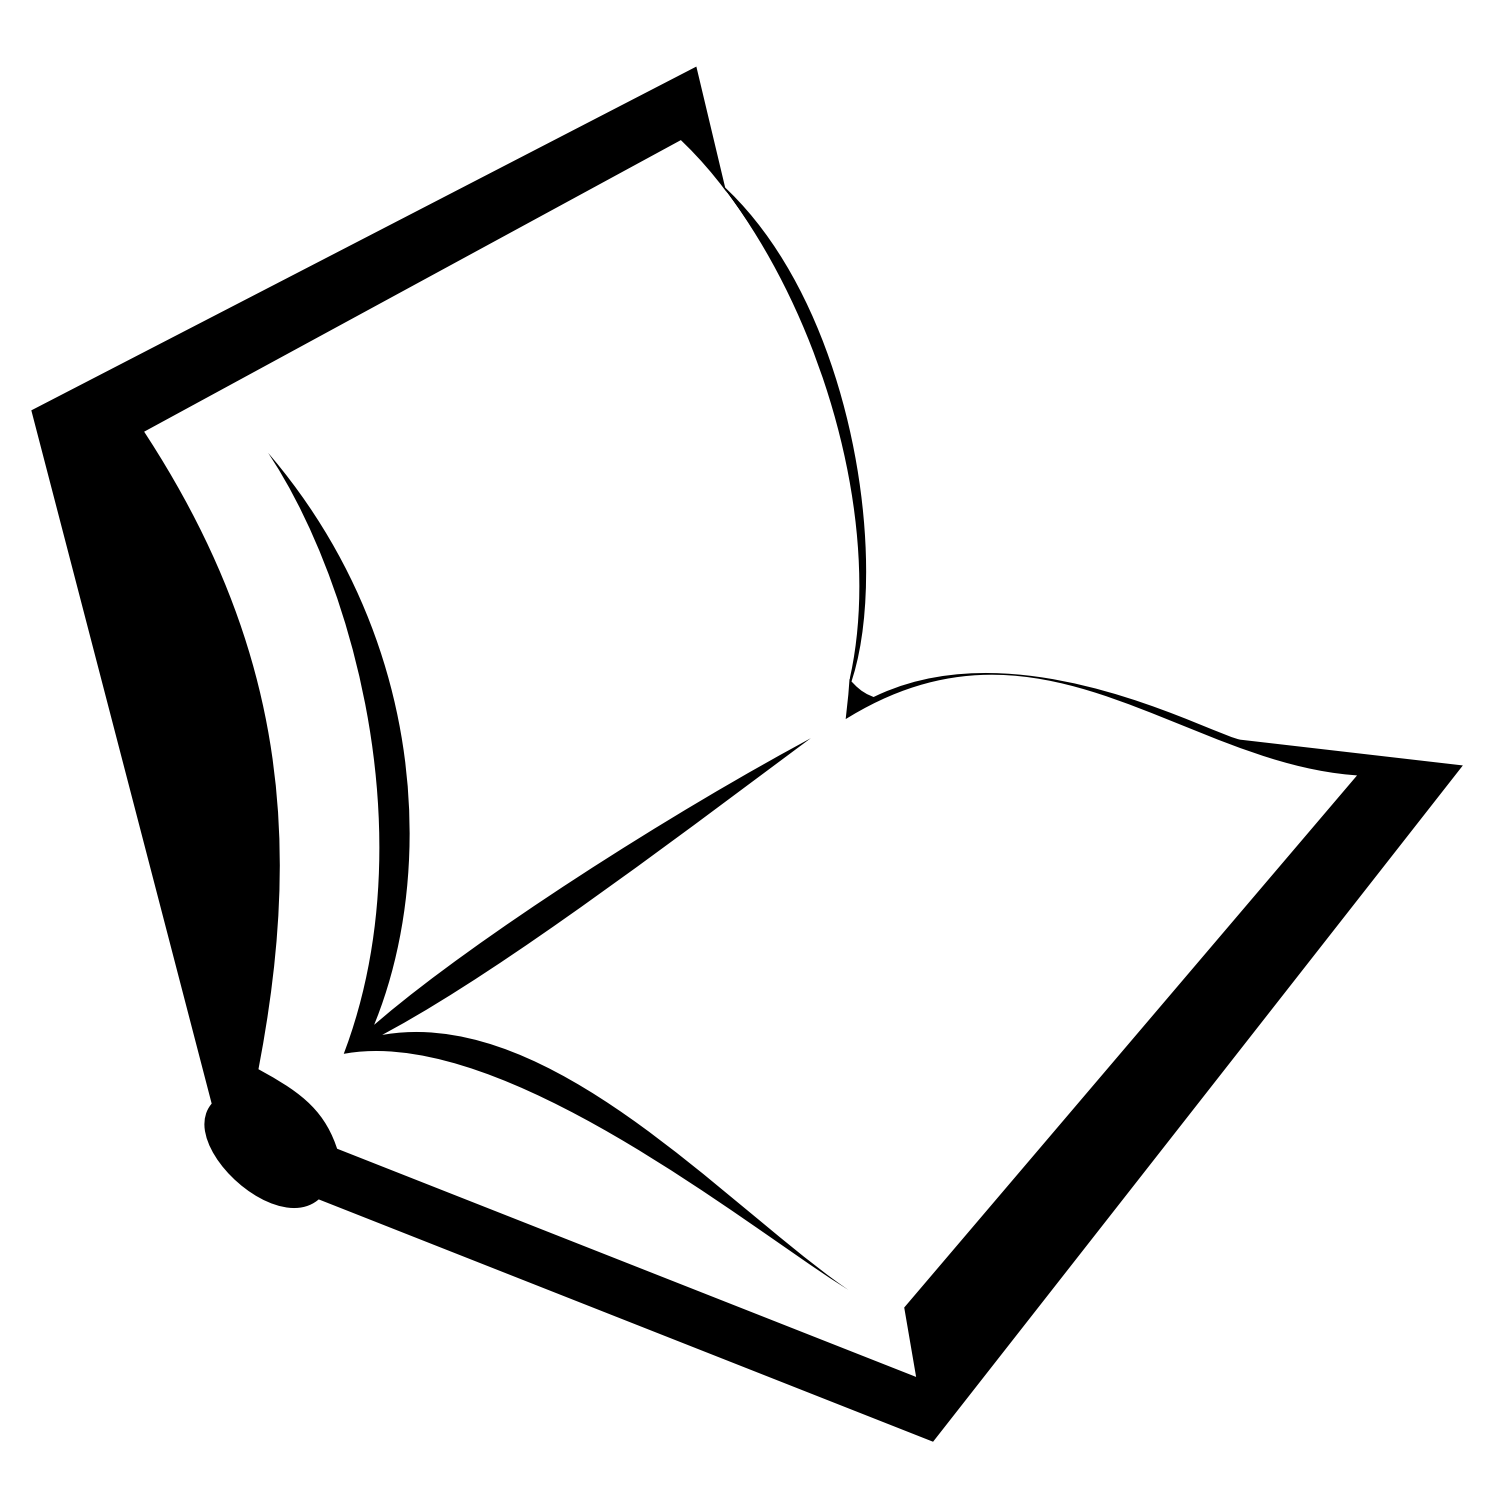 Black book. Free vector illustration.